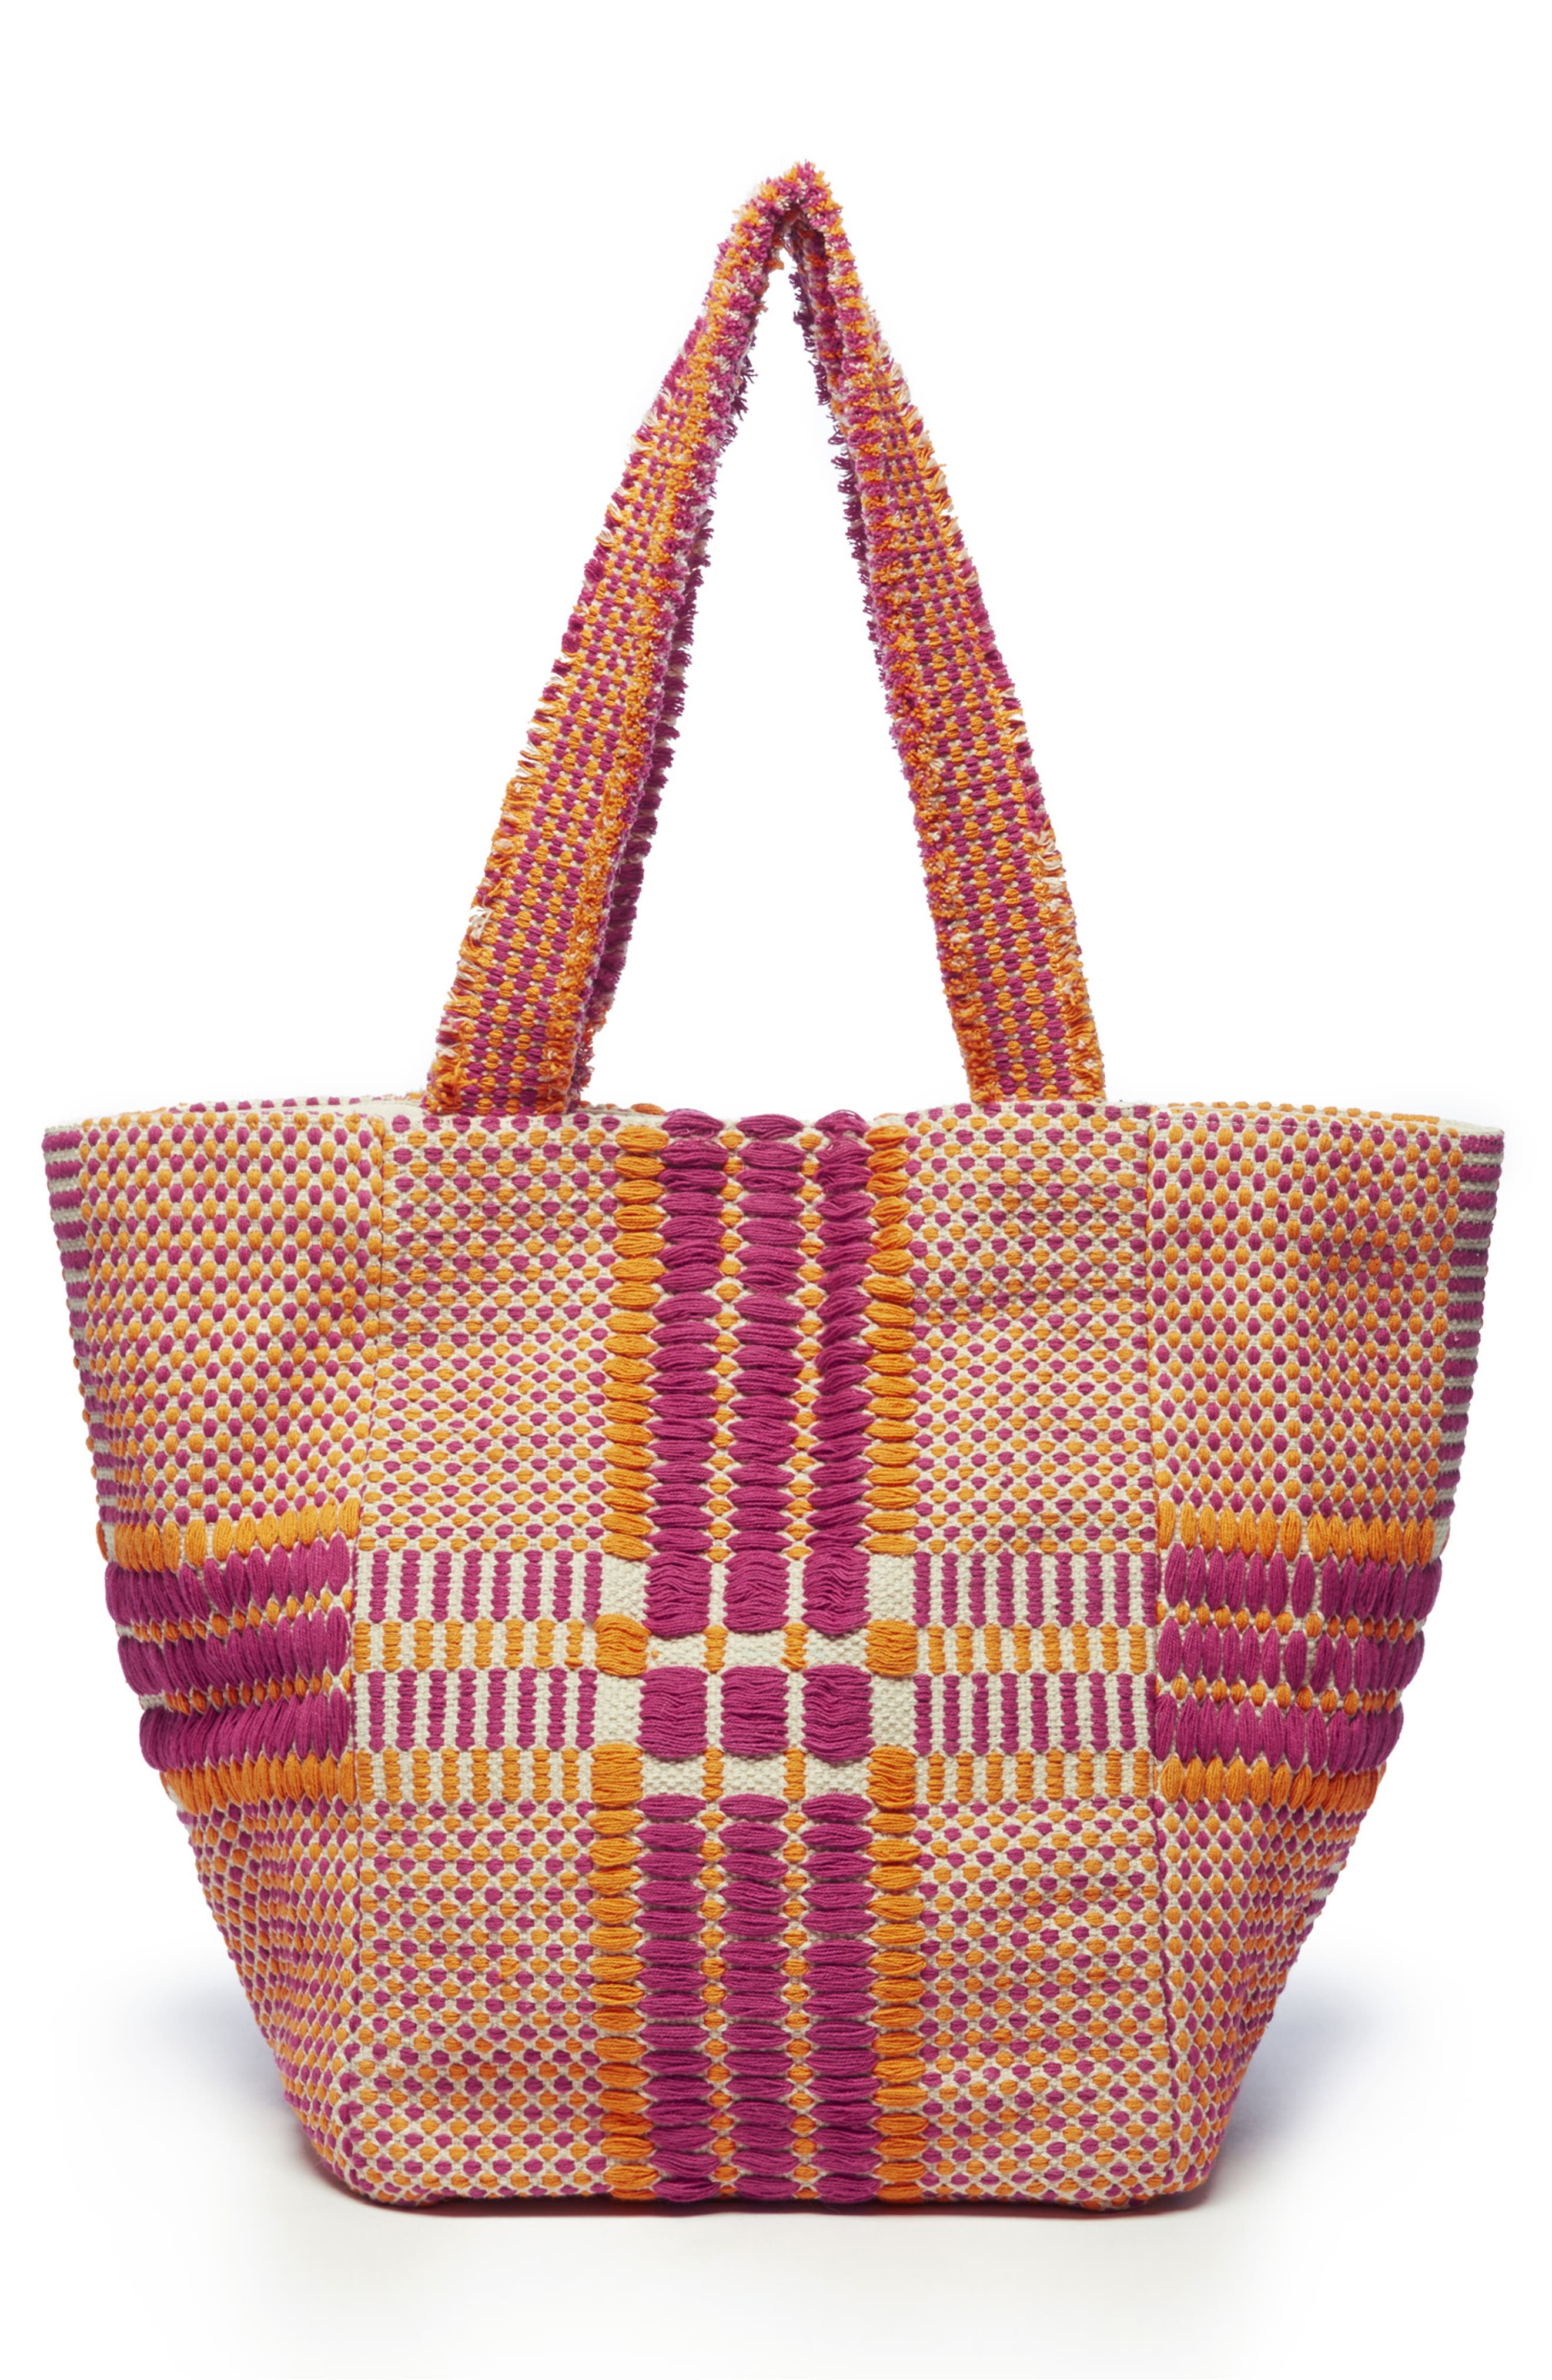 SOLE SOCIETY, Jalia Cotton Tote, Alternate thumbnail 2, color, PINK MULTI